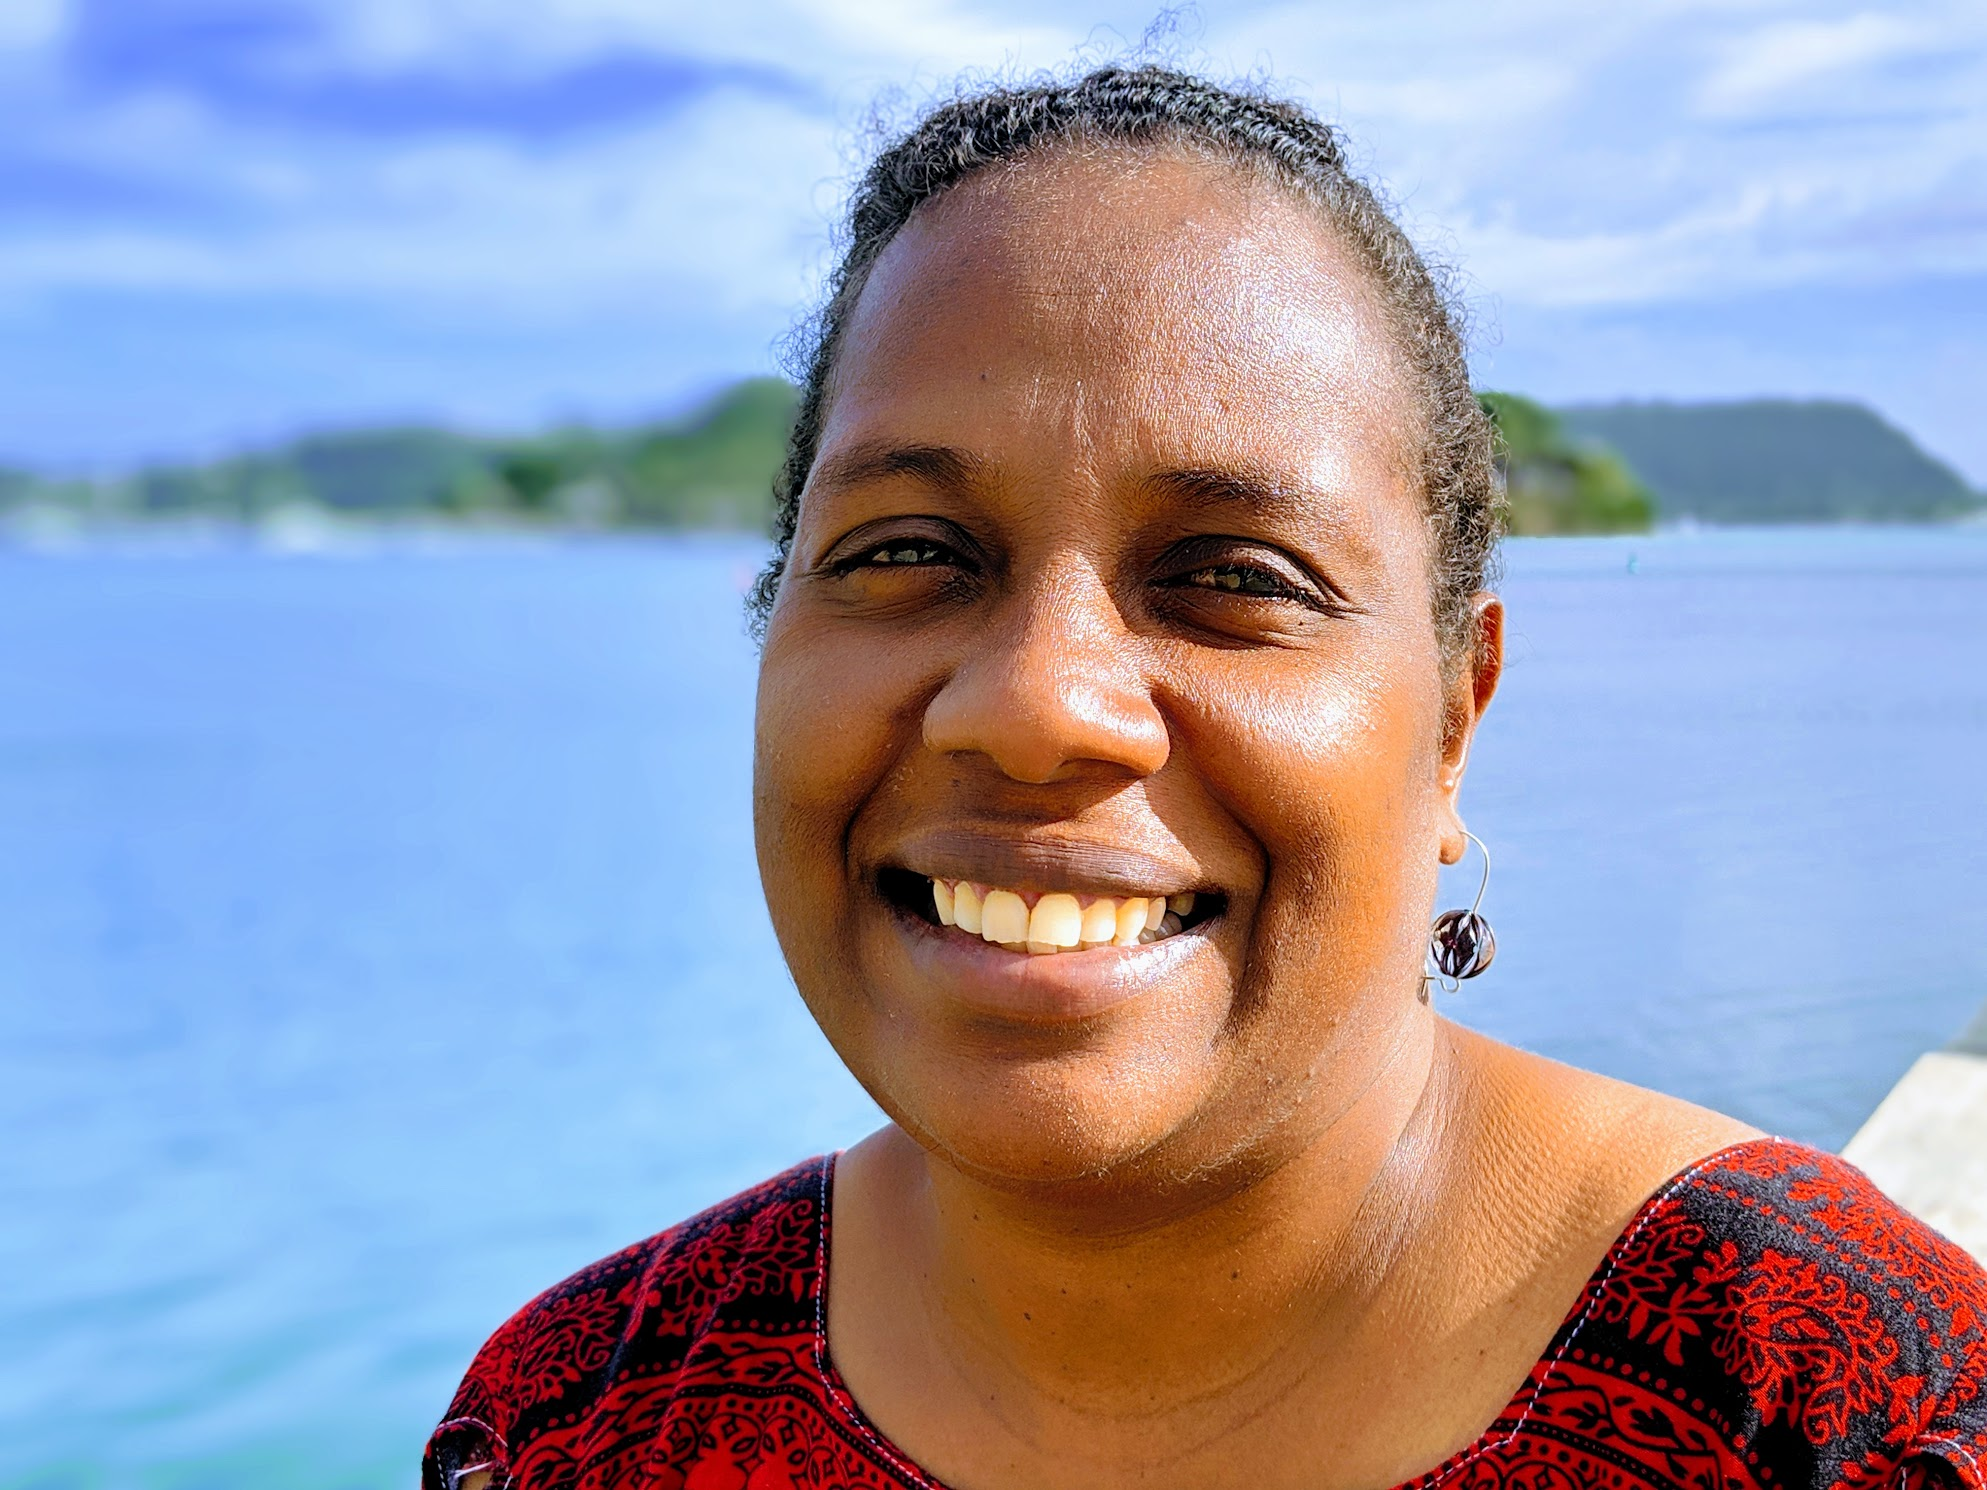 Amanda Bue Tavoa - Culture & Country CoordinatorAmanda Bue Tavoa is a trained tradeswoman turned community-based educational specialist. She brings to the team a wide range of experiences and knowledge. After completing her studies in community-based education at the University of the South Pacific in Fiji, she returned to Vanuatu and began a career in community development. Mrs. Tavoa has worked on a wide range of community development projects from faith-based programs, school age programs, youth programs and addressing violence against women programs by working with men who use violence to recognize their distructive behviour and learn to change their behviours towards their partners and families.